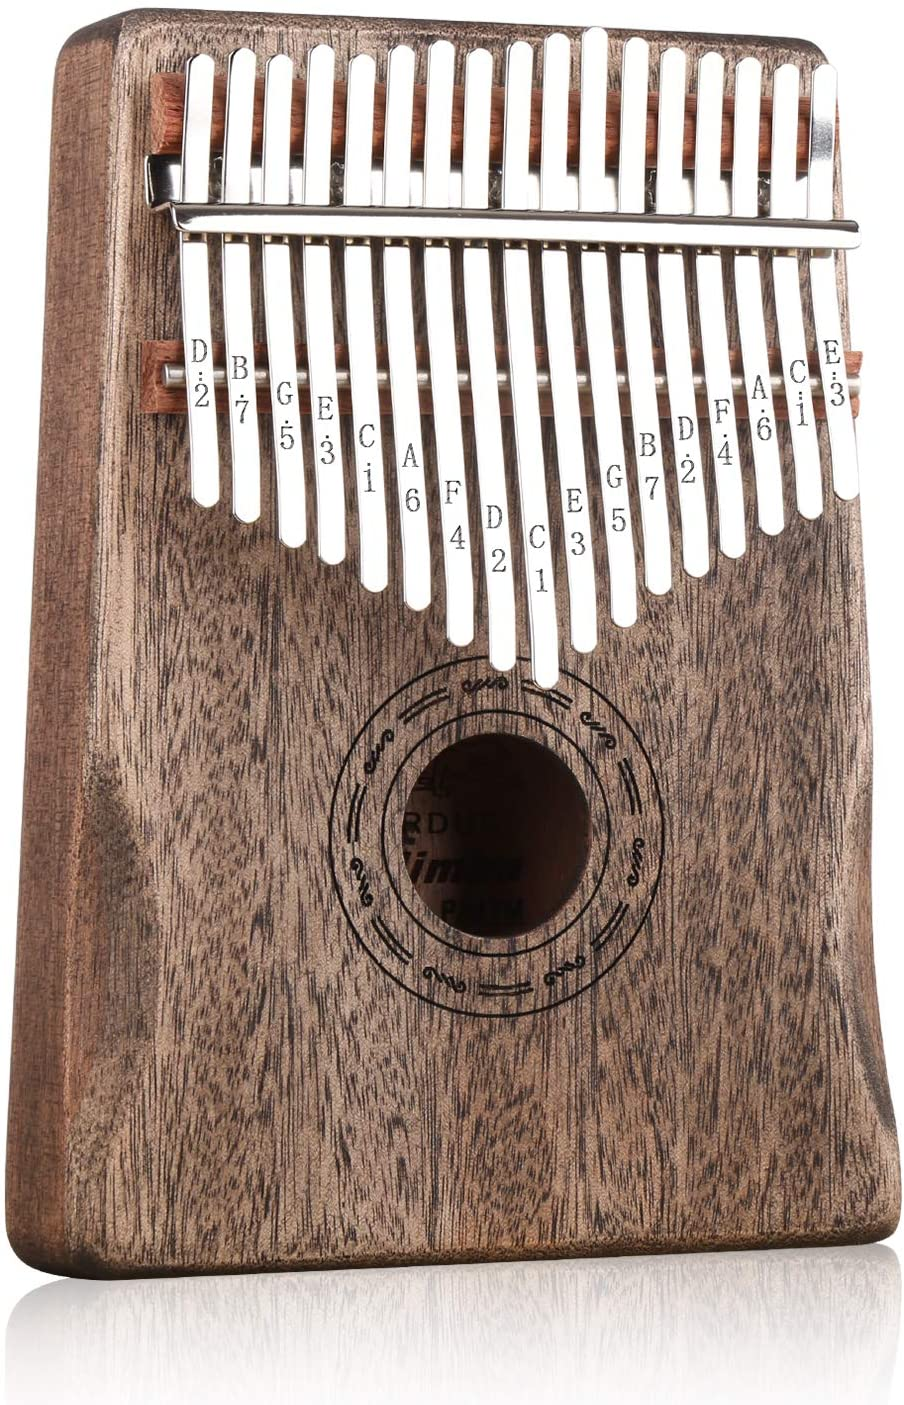 PARDUS Kalimba 17 Keys Thumb Piano with Study Instruction and Tune Hammer, Portable Mbira Sanza African Wood Finger Piano, Gift for Kids Adult Beginners Professional